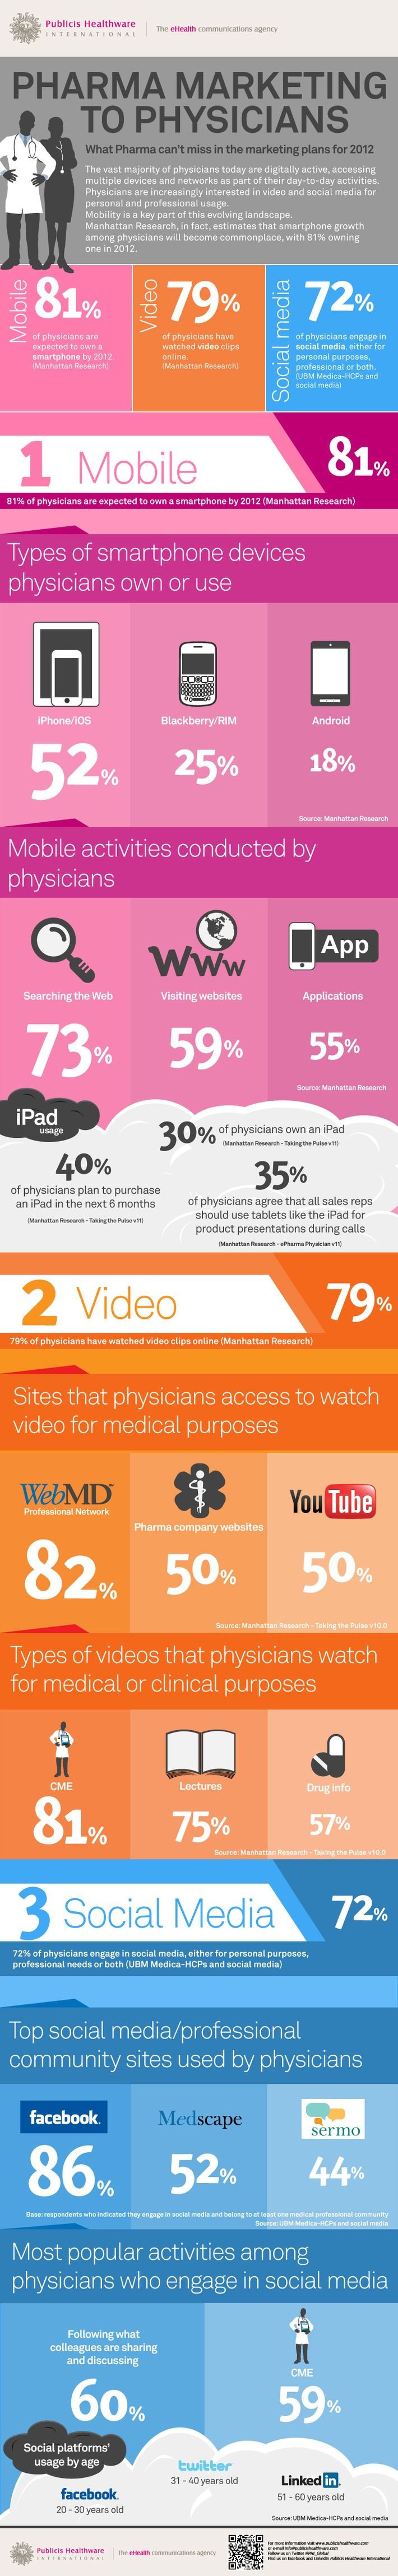 Pharma marketing to physicians [infographic] | Pharmaguy's Insights Into Drug Industry News | Scoop.it